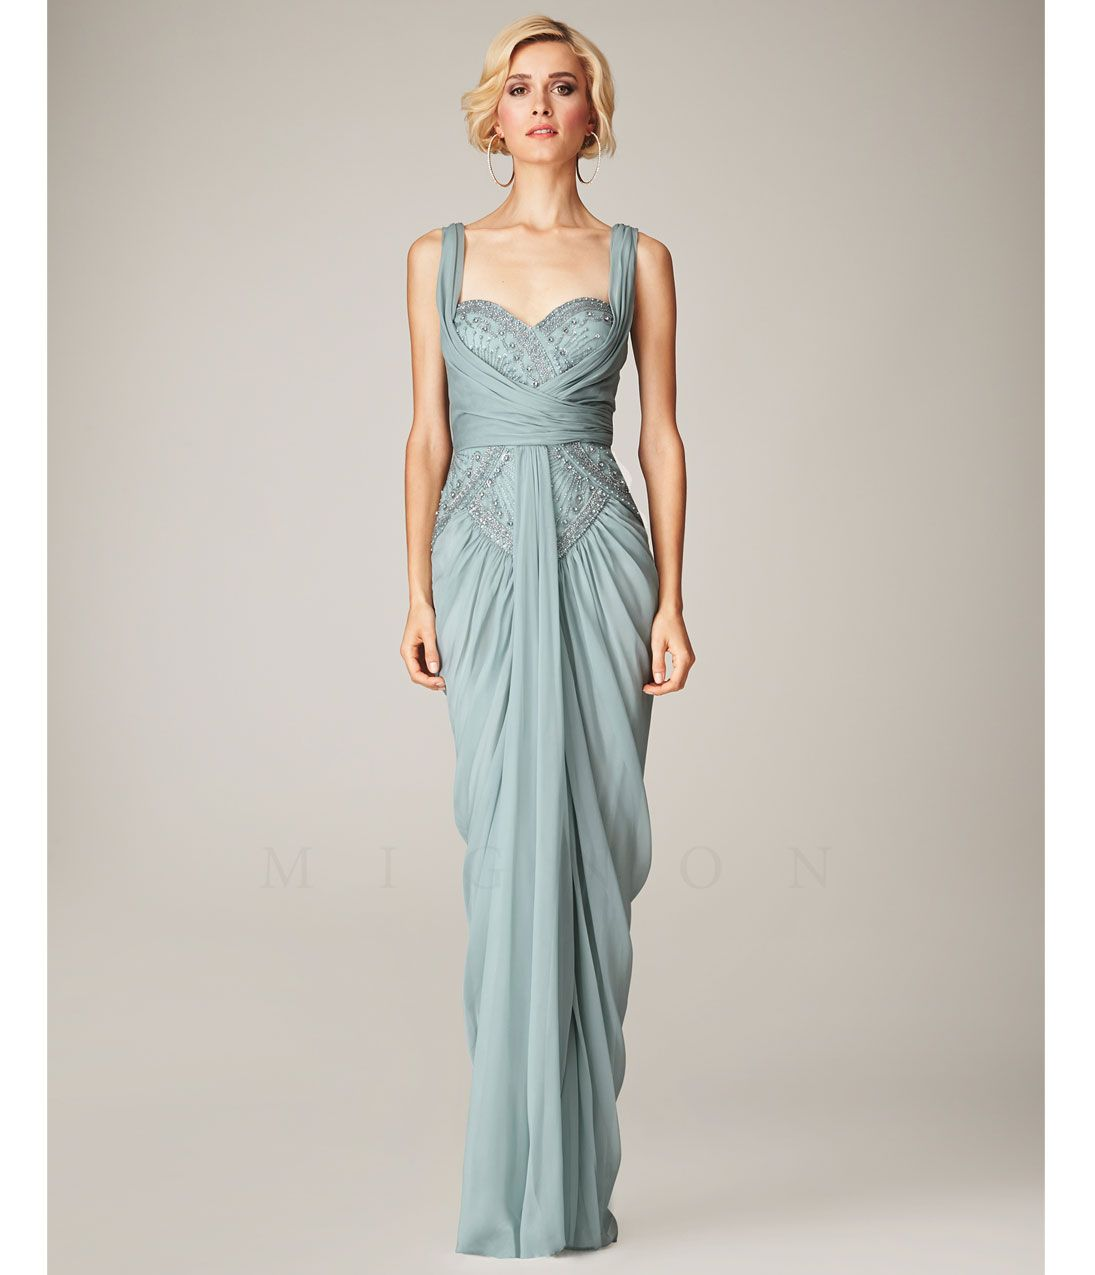 1920s Formal Dresses | Spring, Style and Cocktail parties